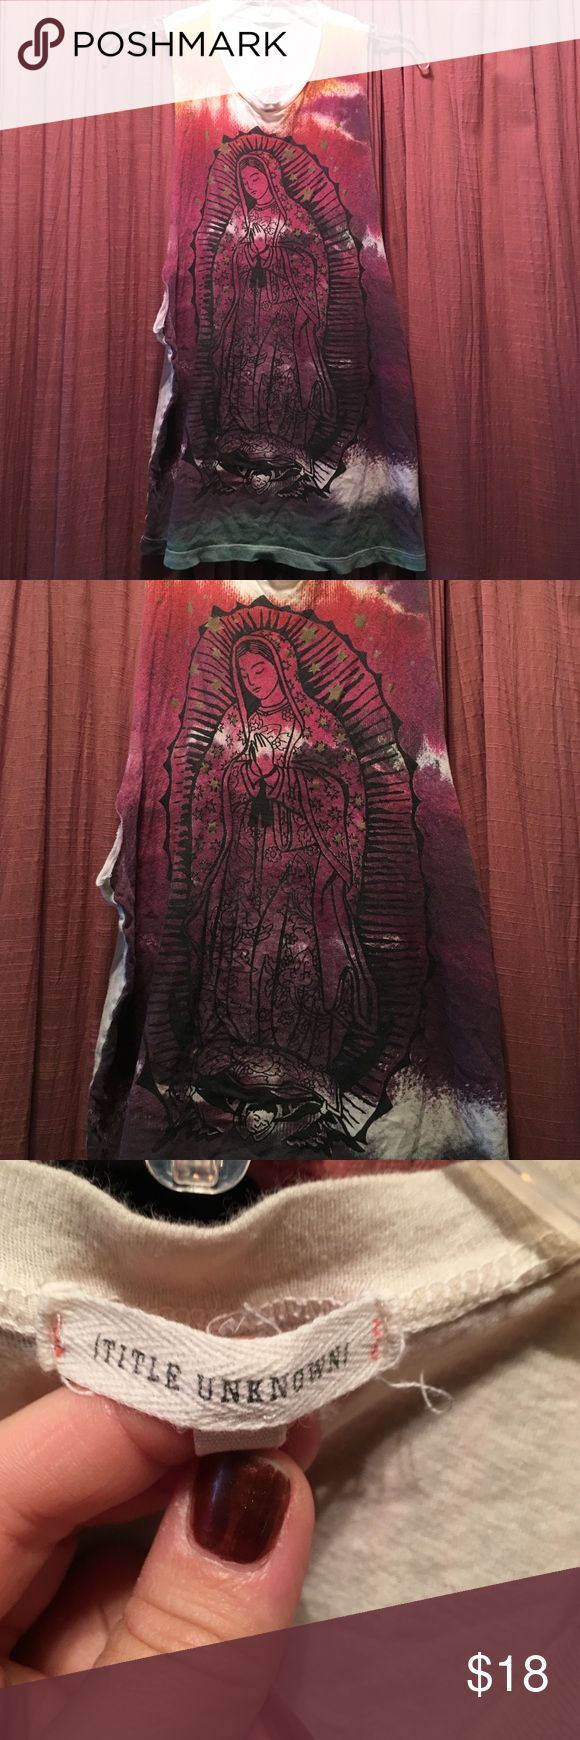 "Urban Outfitter virgin de Guadalupe T-shirt Size small ""little known"" for urban outfitters-but fits close to medium t -shirt. Virgin Mary/Virgen de Guadalupe t-shirt. Absolutely beautiful T-shirt!!! Urban Outfitters Tops Tees - Short Sleeve"